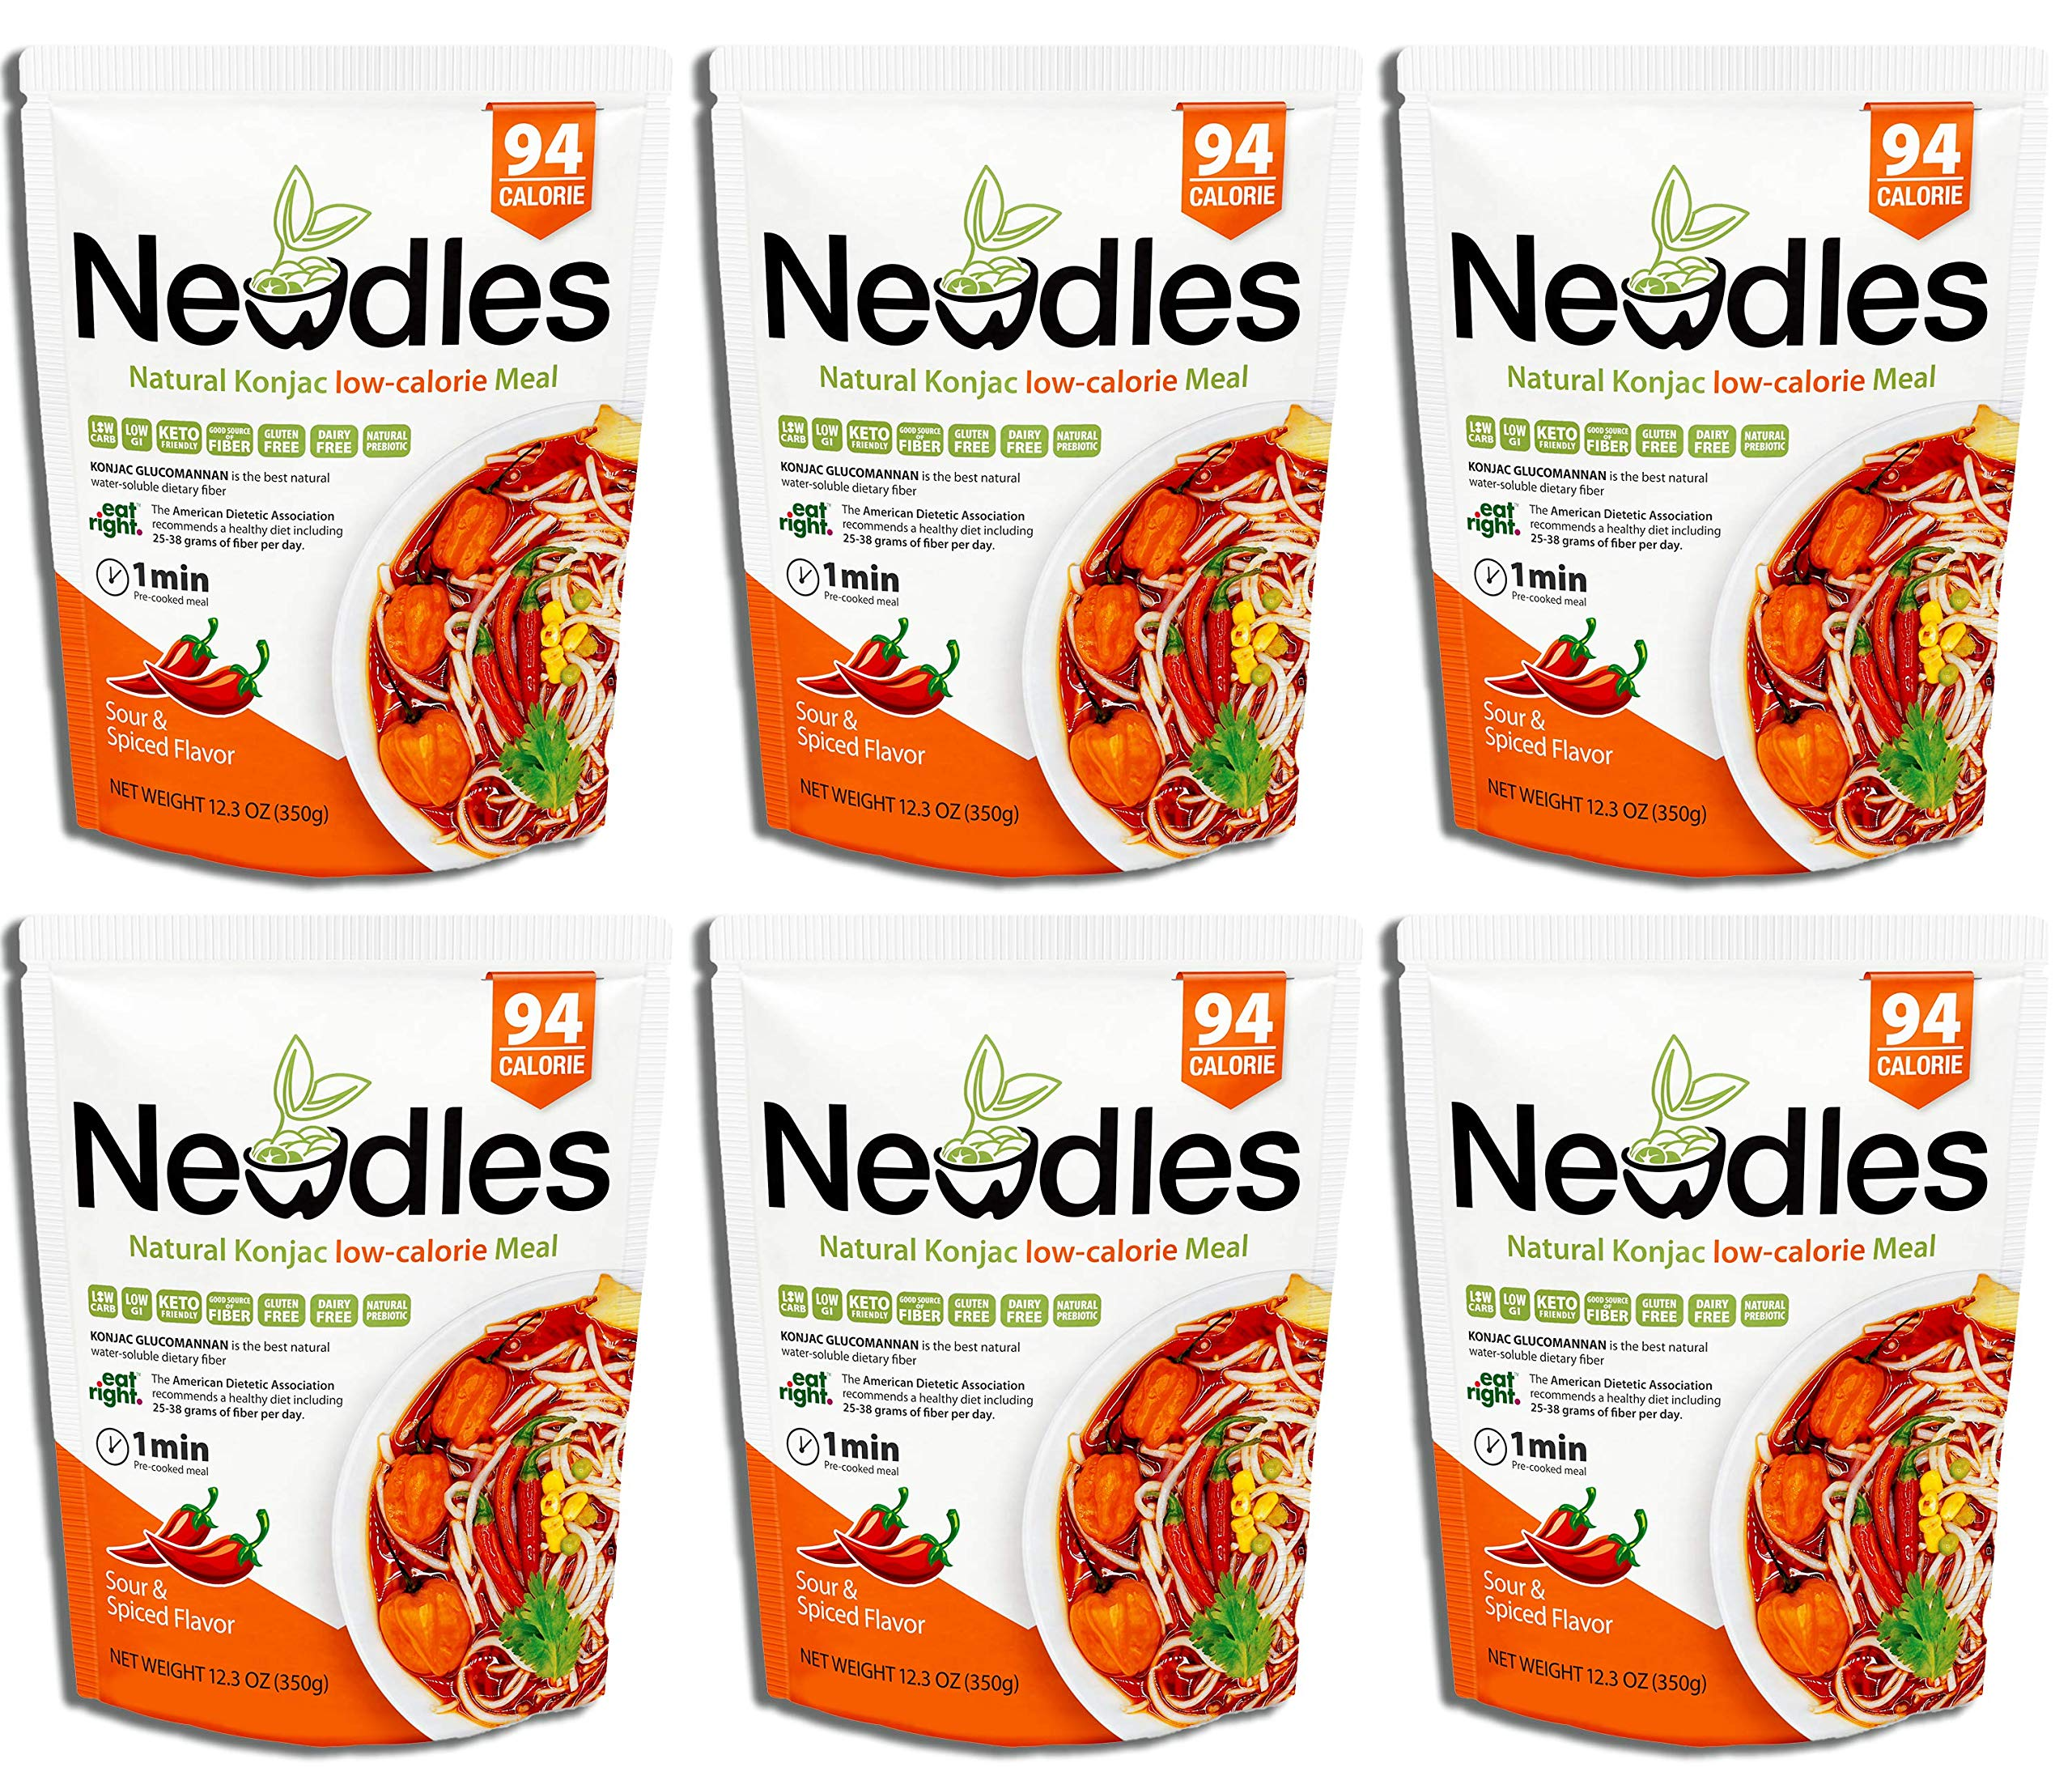 Newdles (New Generation)Konjac/Shirataki Low-Calorie Meal(Sour&Spiced Flavor)Easy to prepare, No boiling, Low Carb, Low Calories, High water-soluble dietary fiber, Gluten-Free, Good taste (Pack of 6) by Newdles